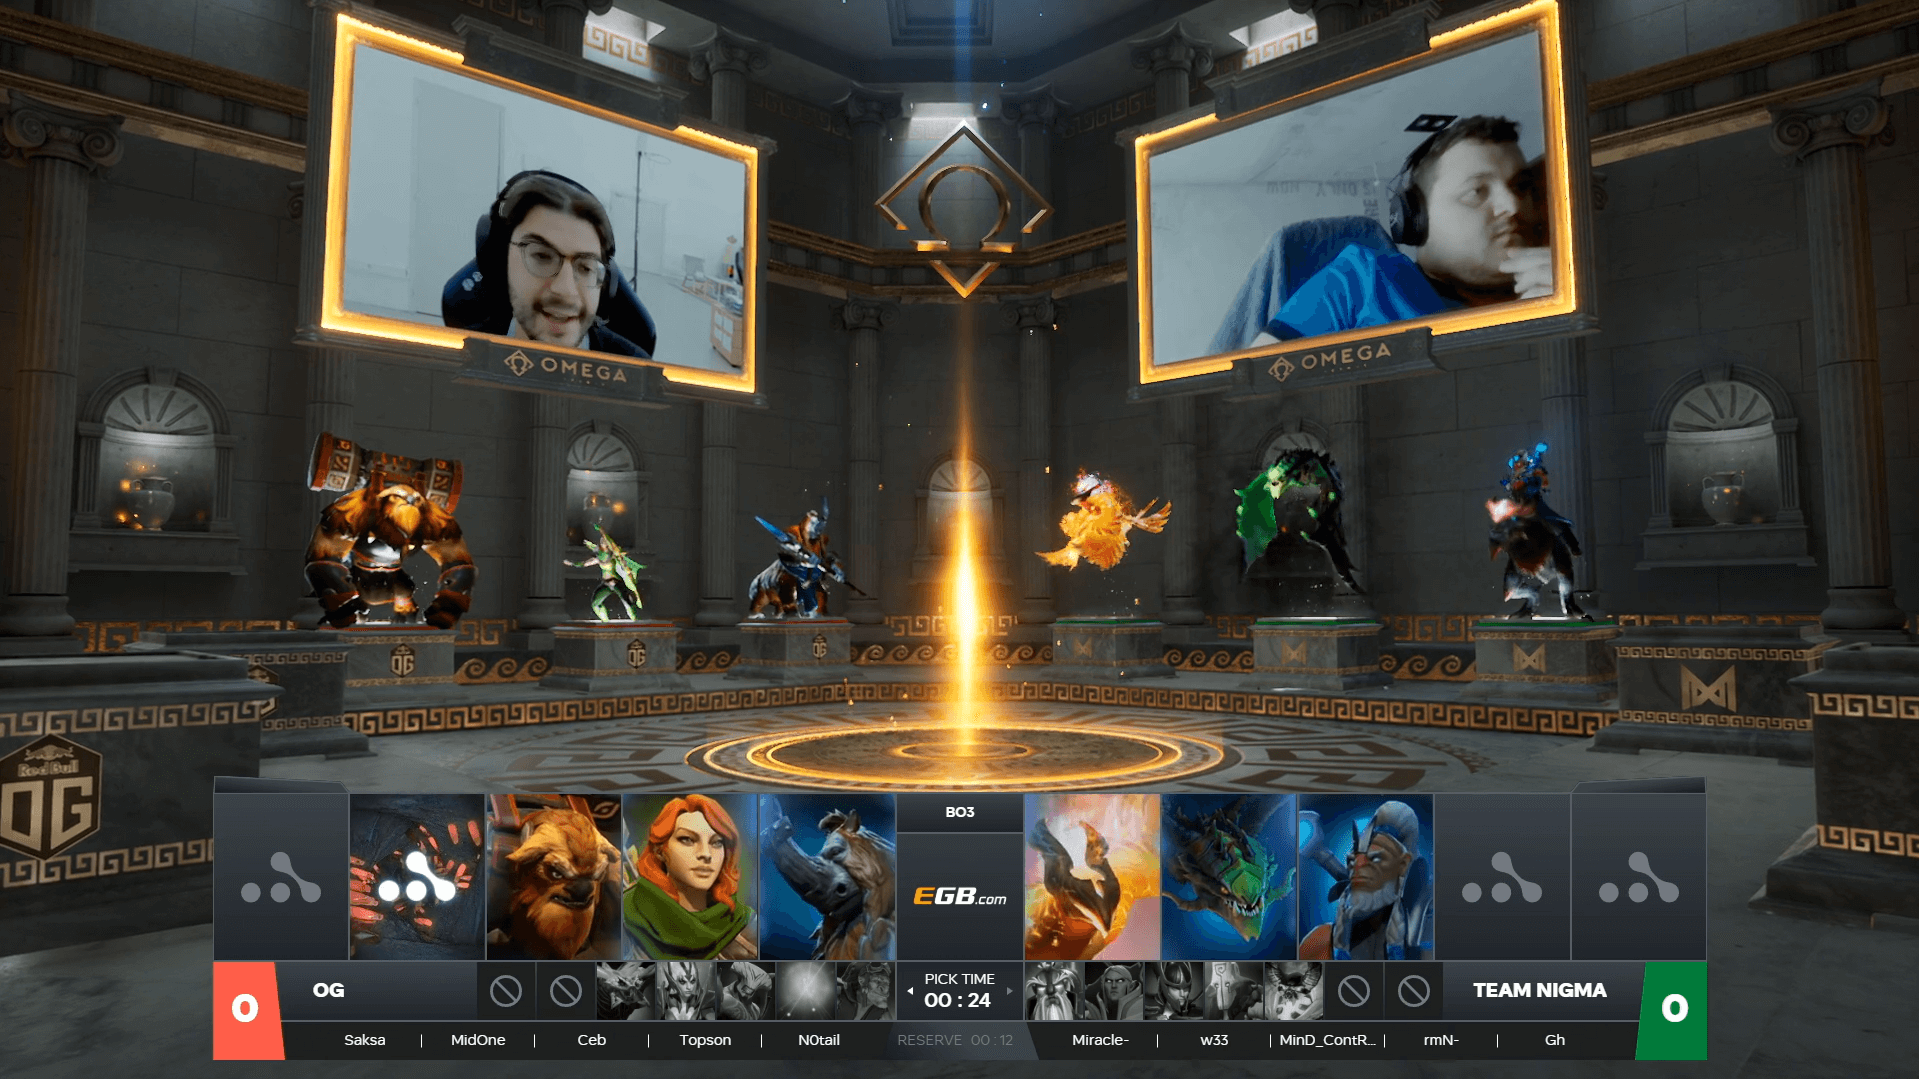 Team Nigma and OG players are picking their Dota 2 characters for a match in a virtual temple during the OMEGA League online tournament. Screenshot credit: WePlay Esports